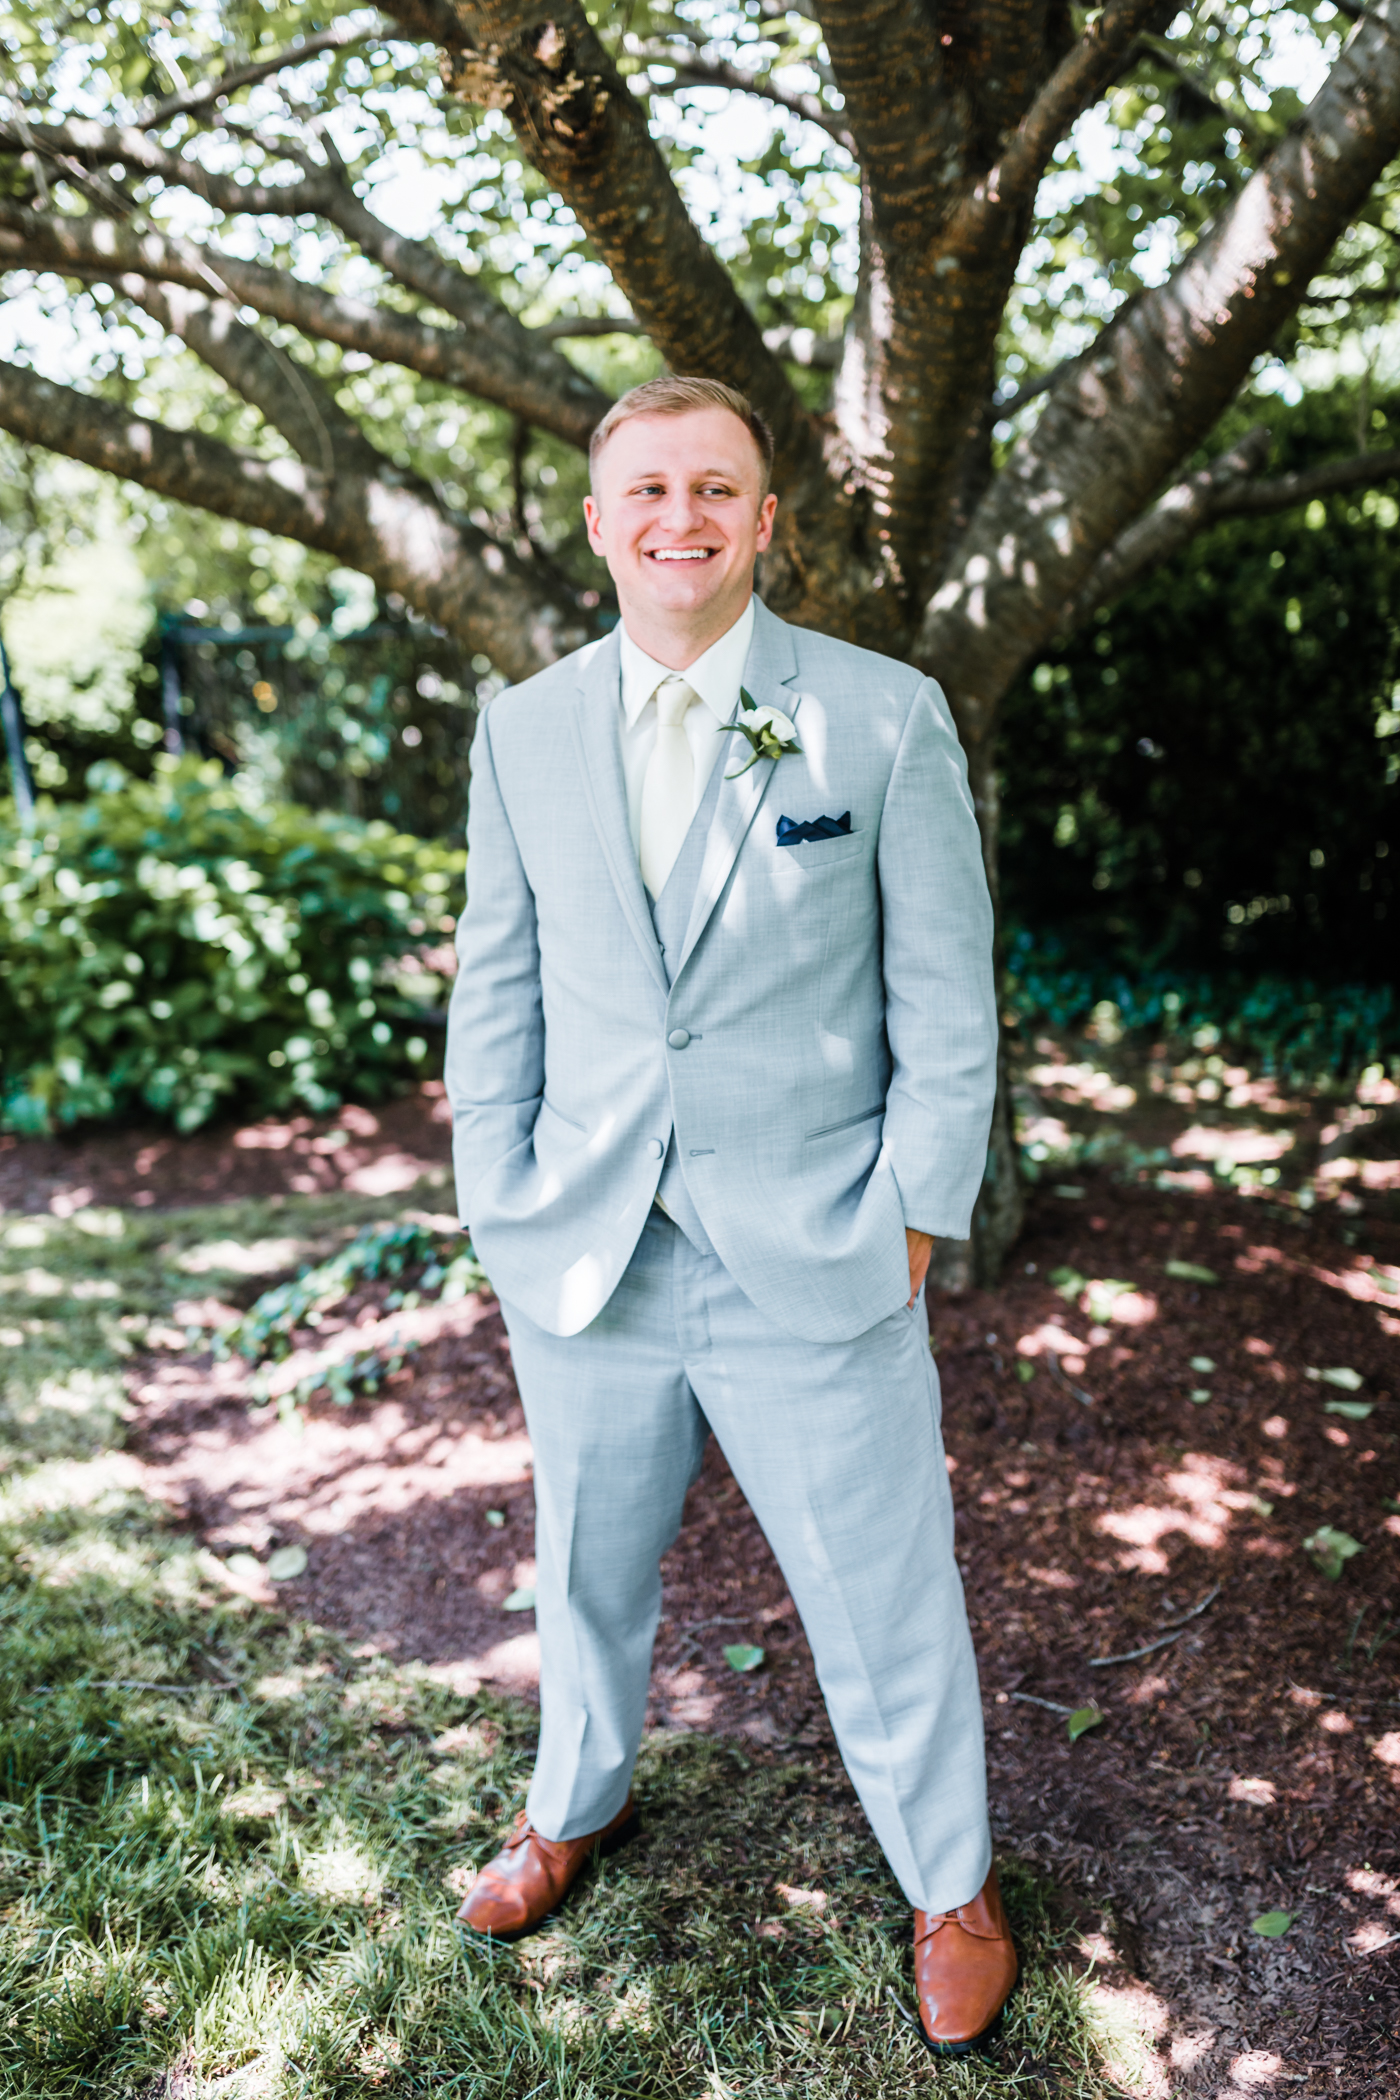 groom laughing - classy venues near Carroll County Maryland